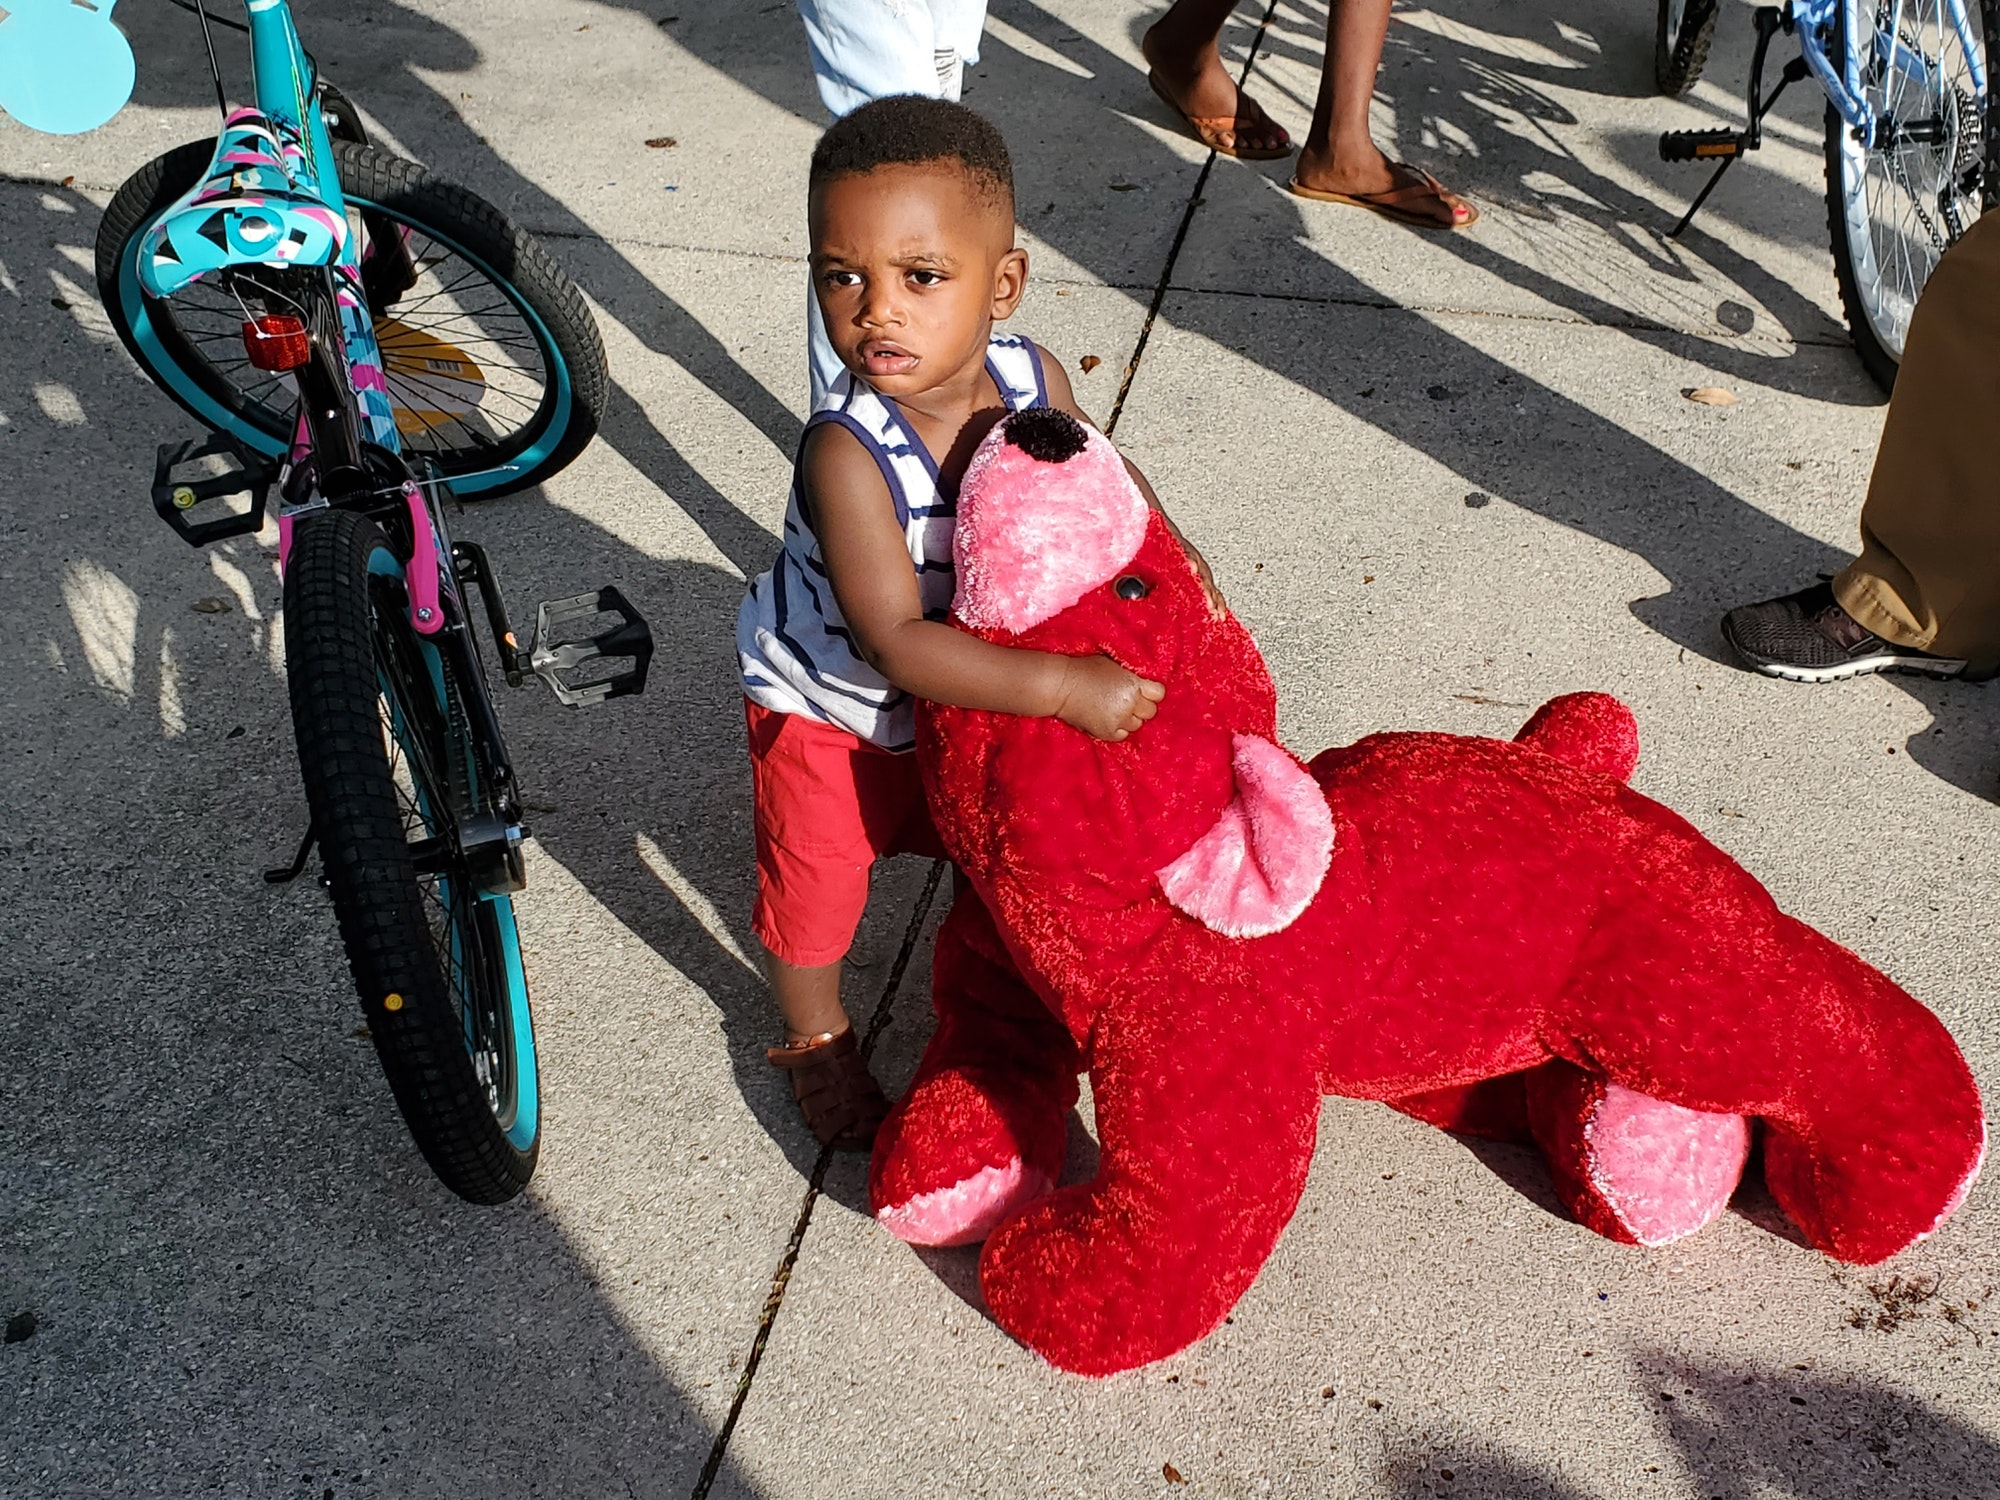 Little boy holding a stuffed animal next to a bike 12/24/2020